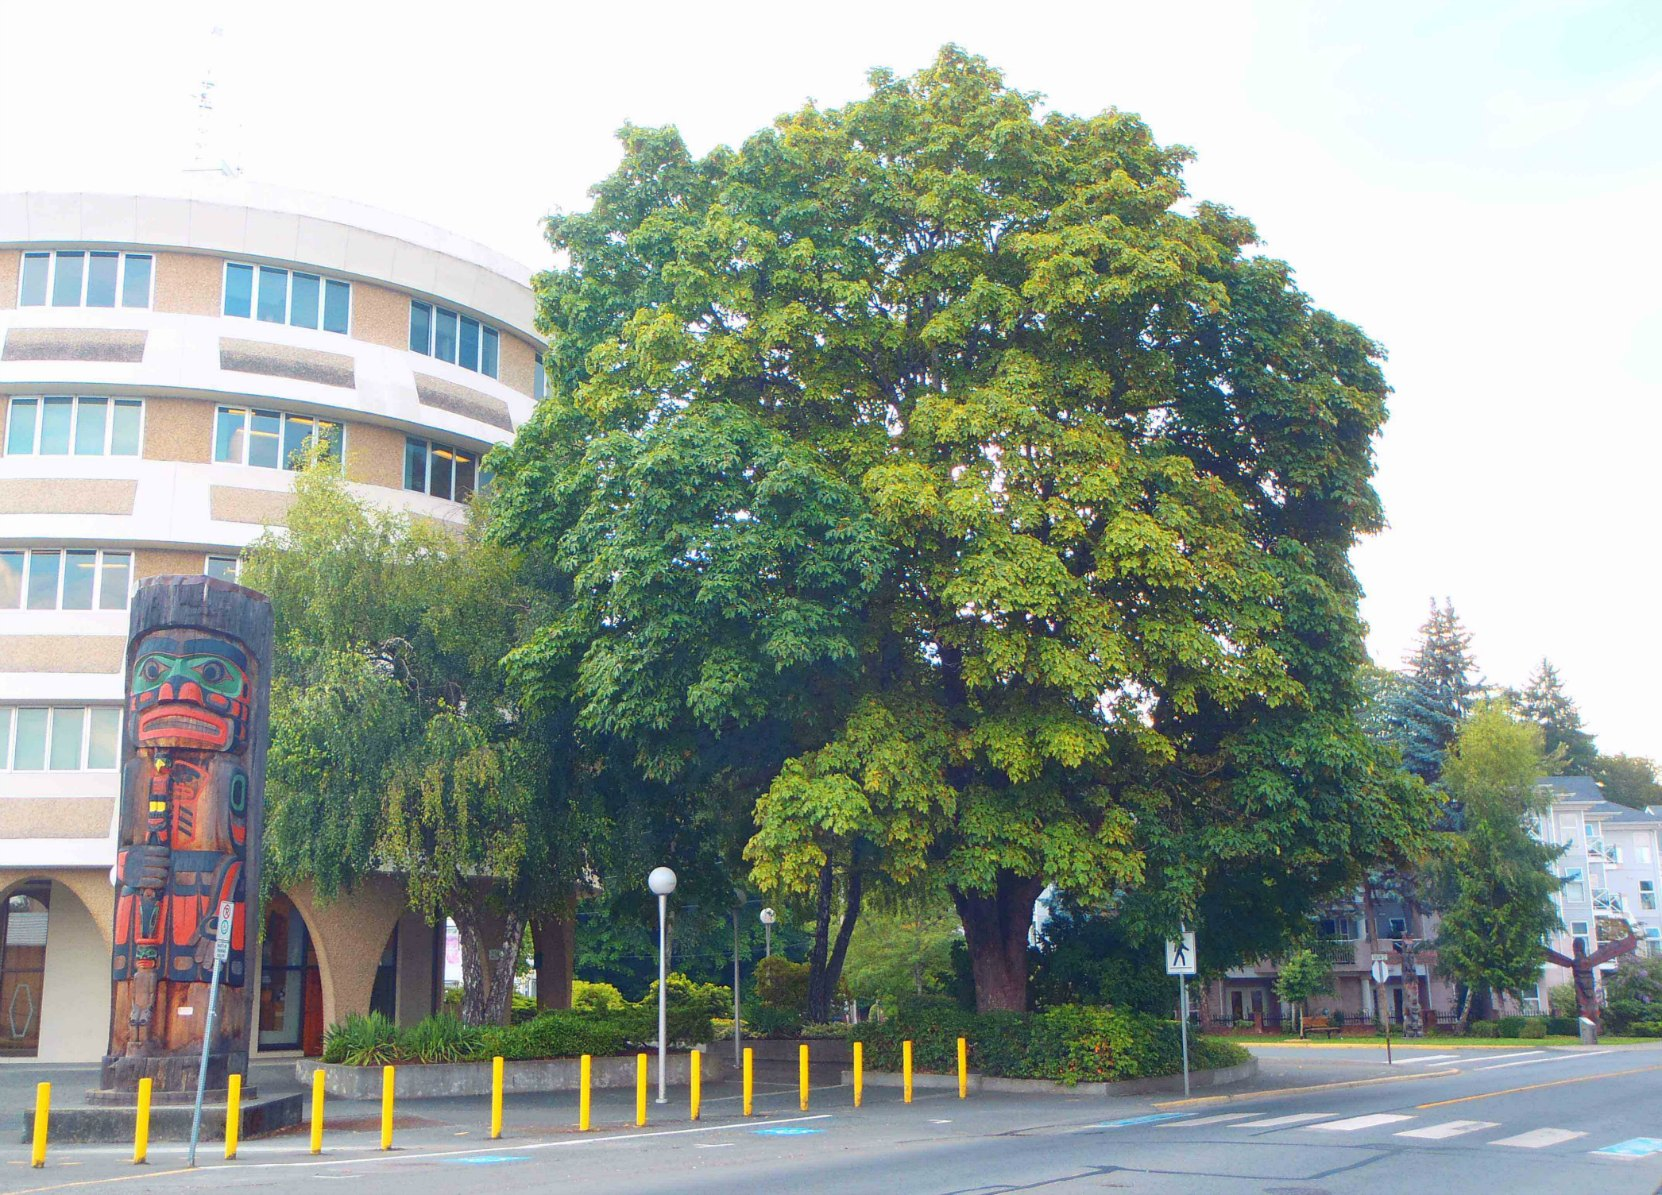 Confederation Tree, Government Street at Jubilee Street. Planted by David Alexander on 1 July 1927 to commemorate the 50th anniversary of Canadian Confederation.